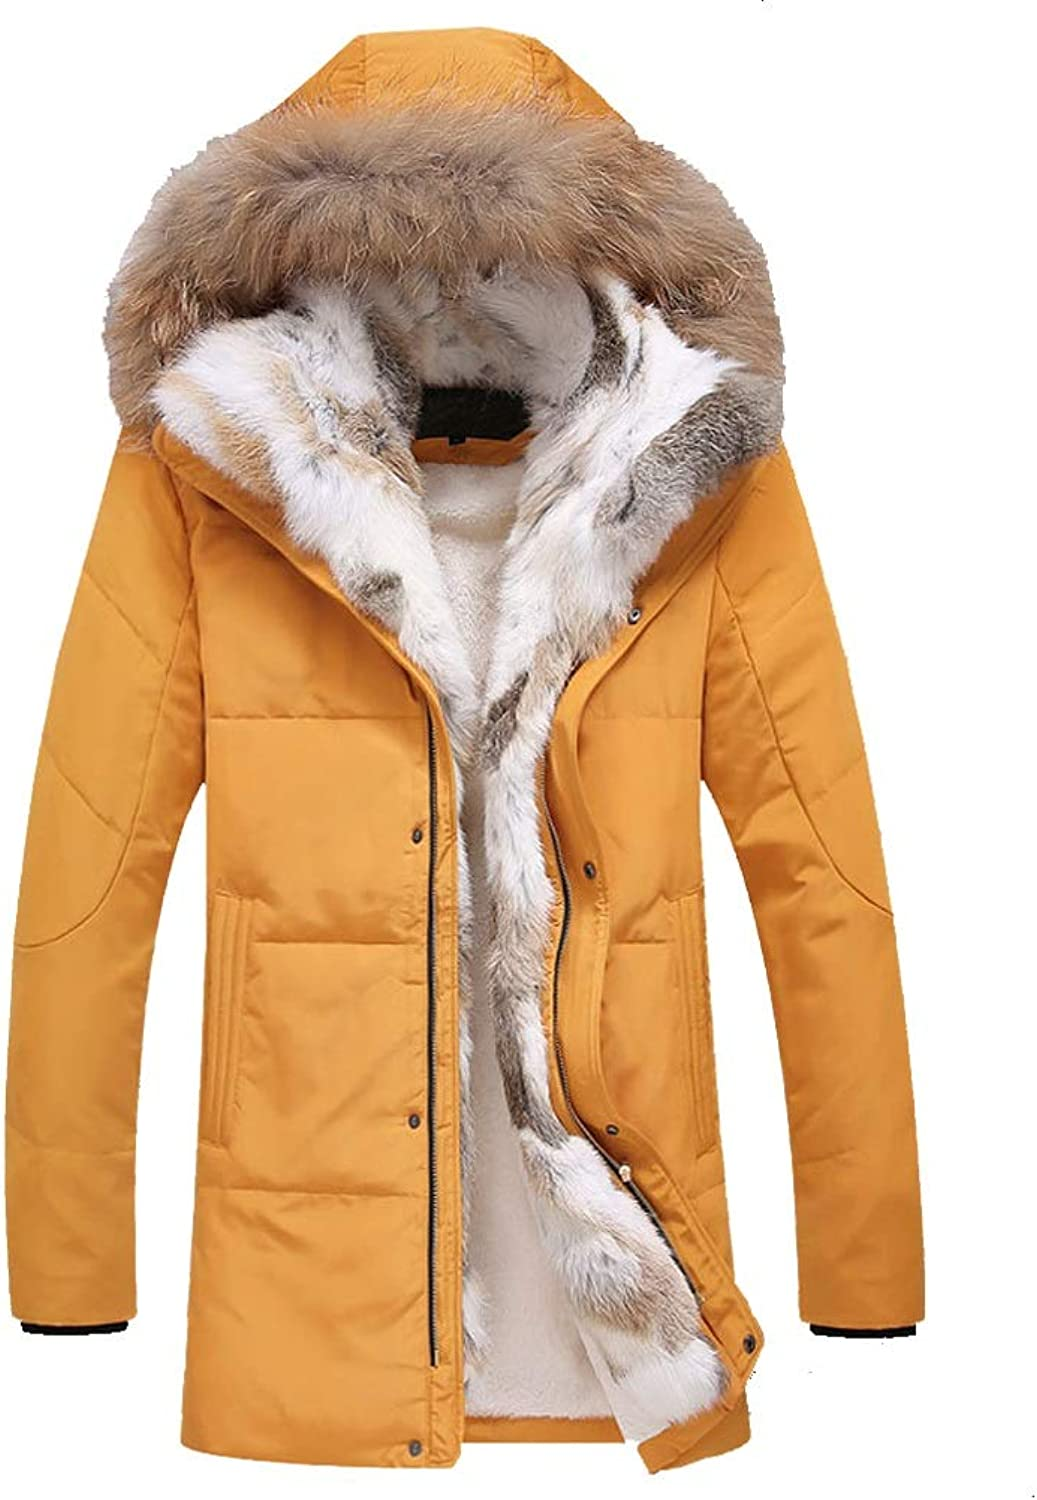 New Down Jacket, Men's Casual Long Hooded Jacket with Large Fur Collar, Winter Outdoor Cold Warm Clothing, Suitable for Cold Weather (color   Yellow, Size   XXXL)